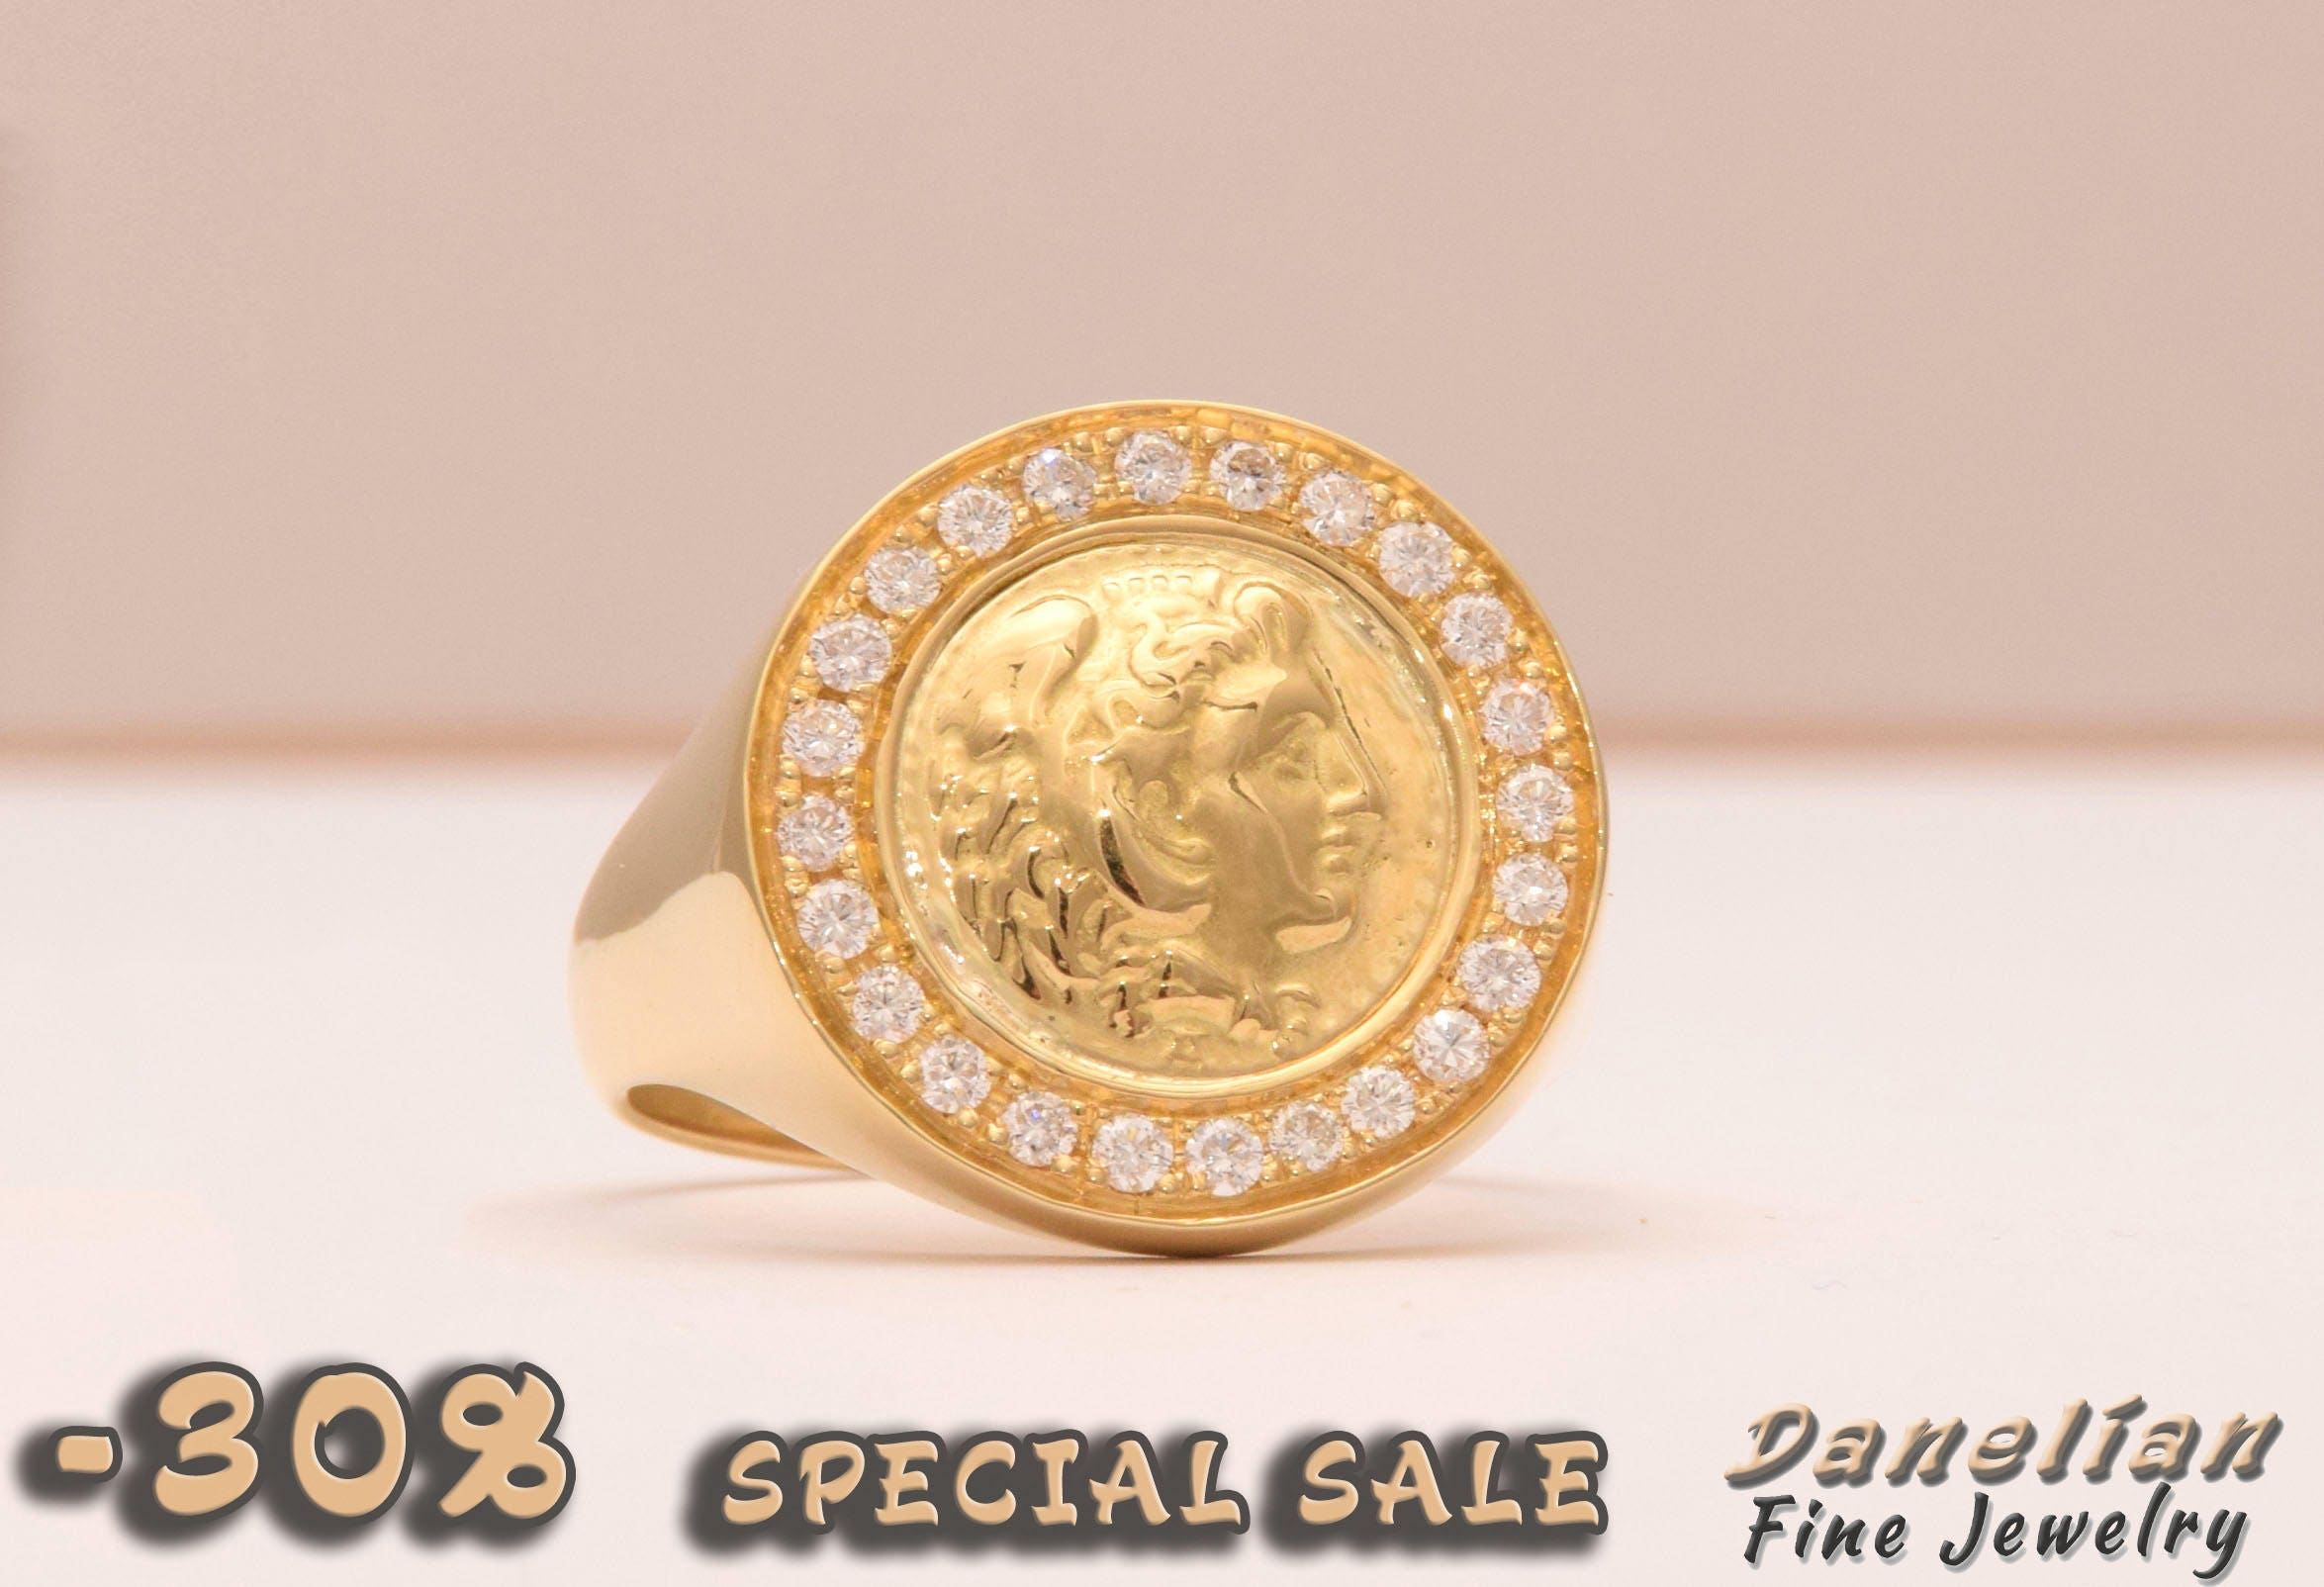 rings king george set coin full yellow ring v gold shouldered product patterned sovereign